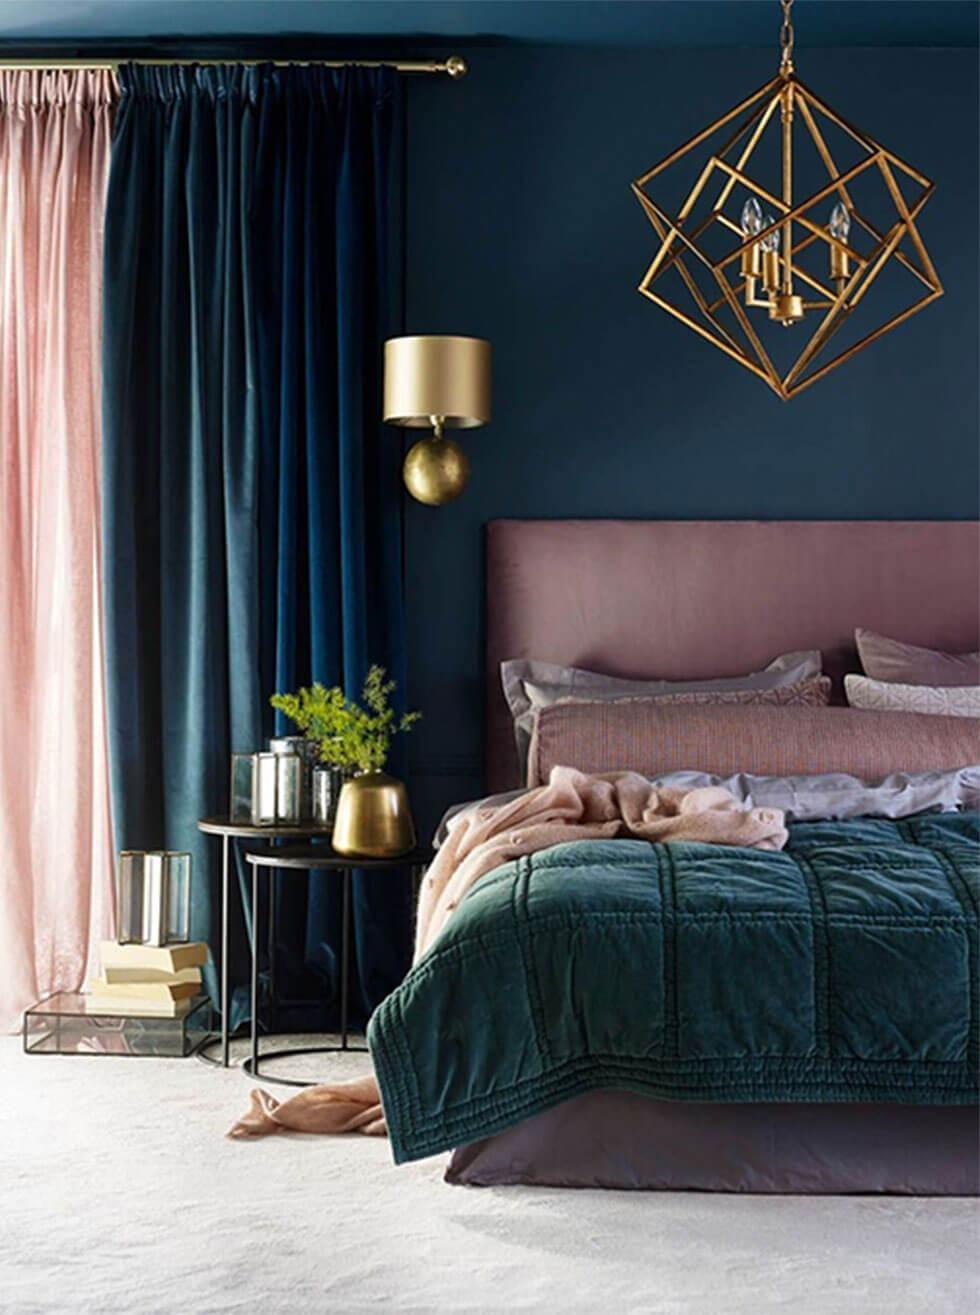 A dark teal green bedroom with dusky pink accents.